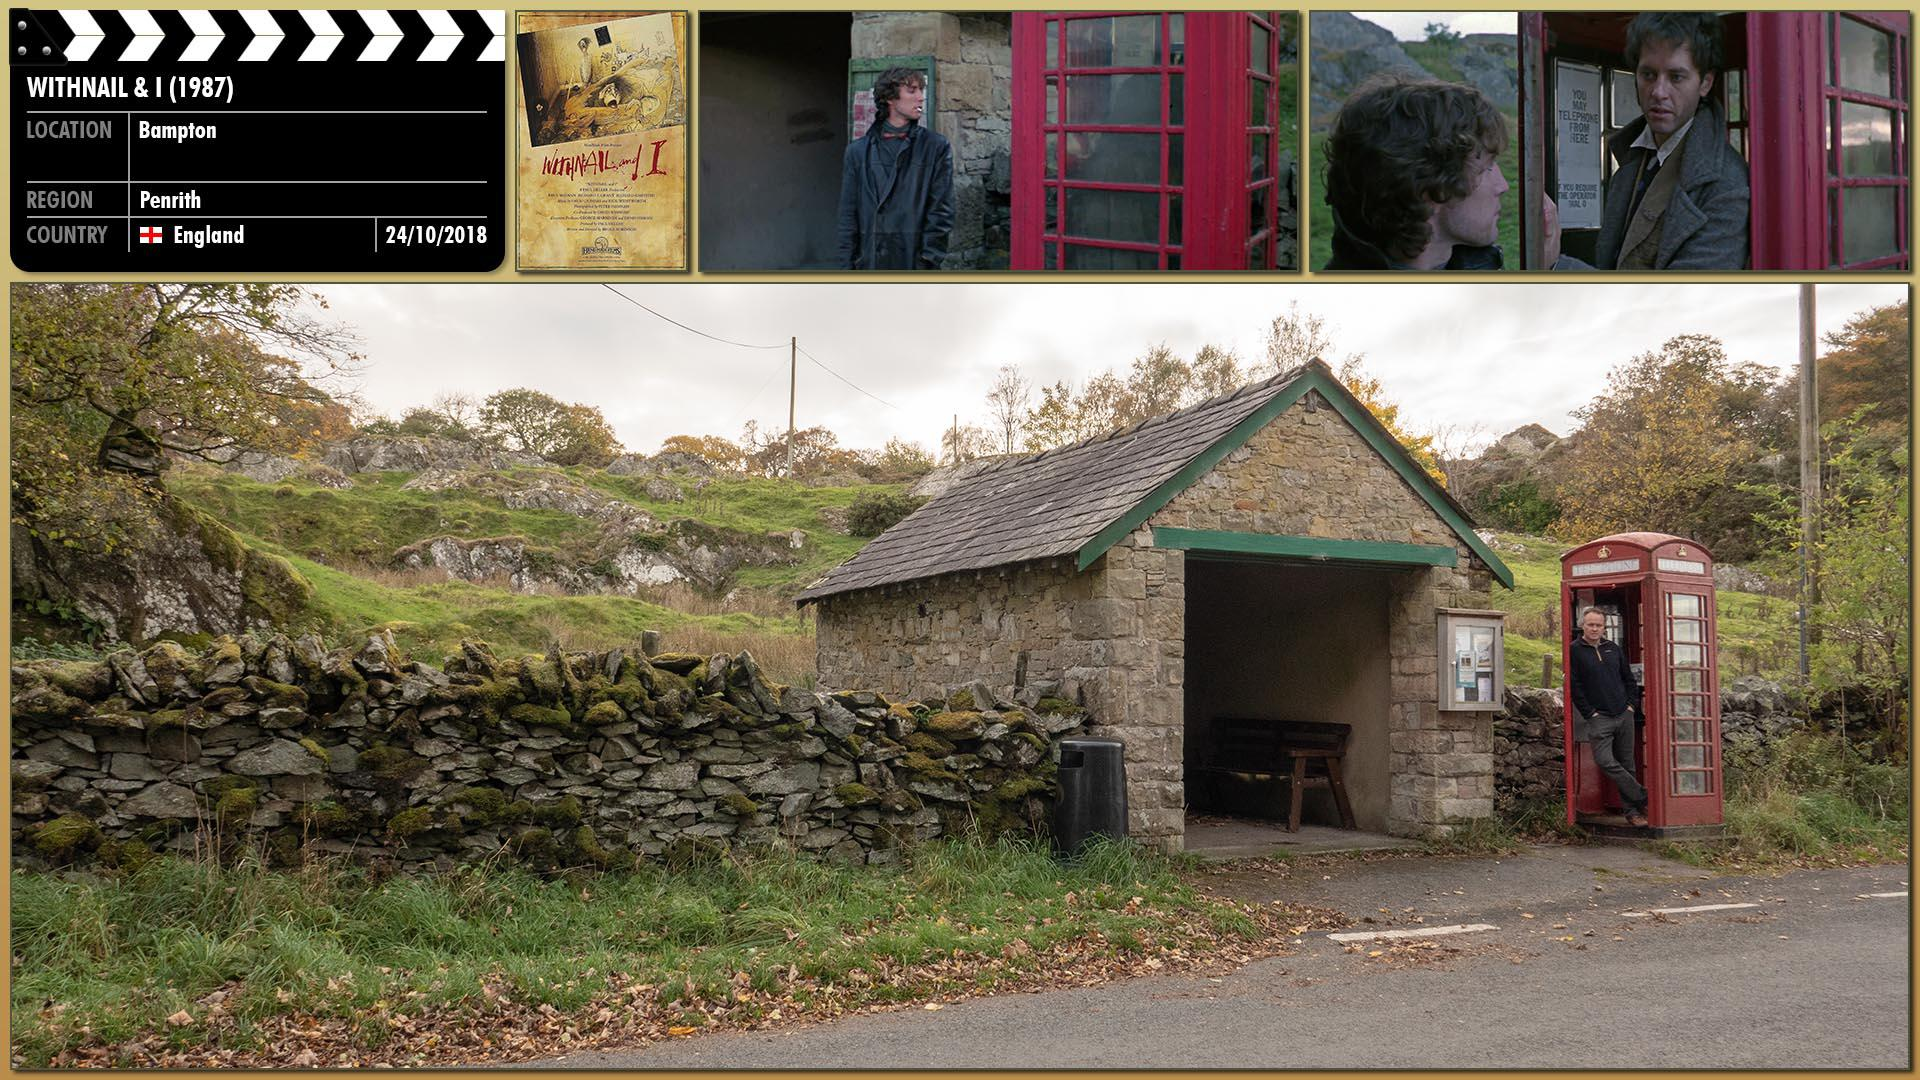 Filming location photo for Withnail & I (1987) 6 of 7